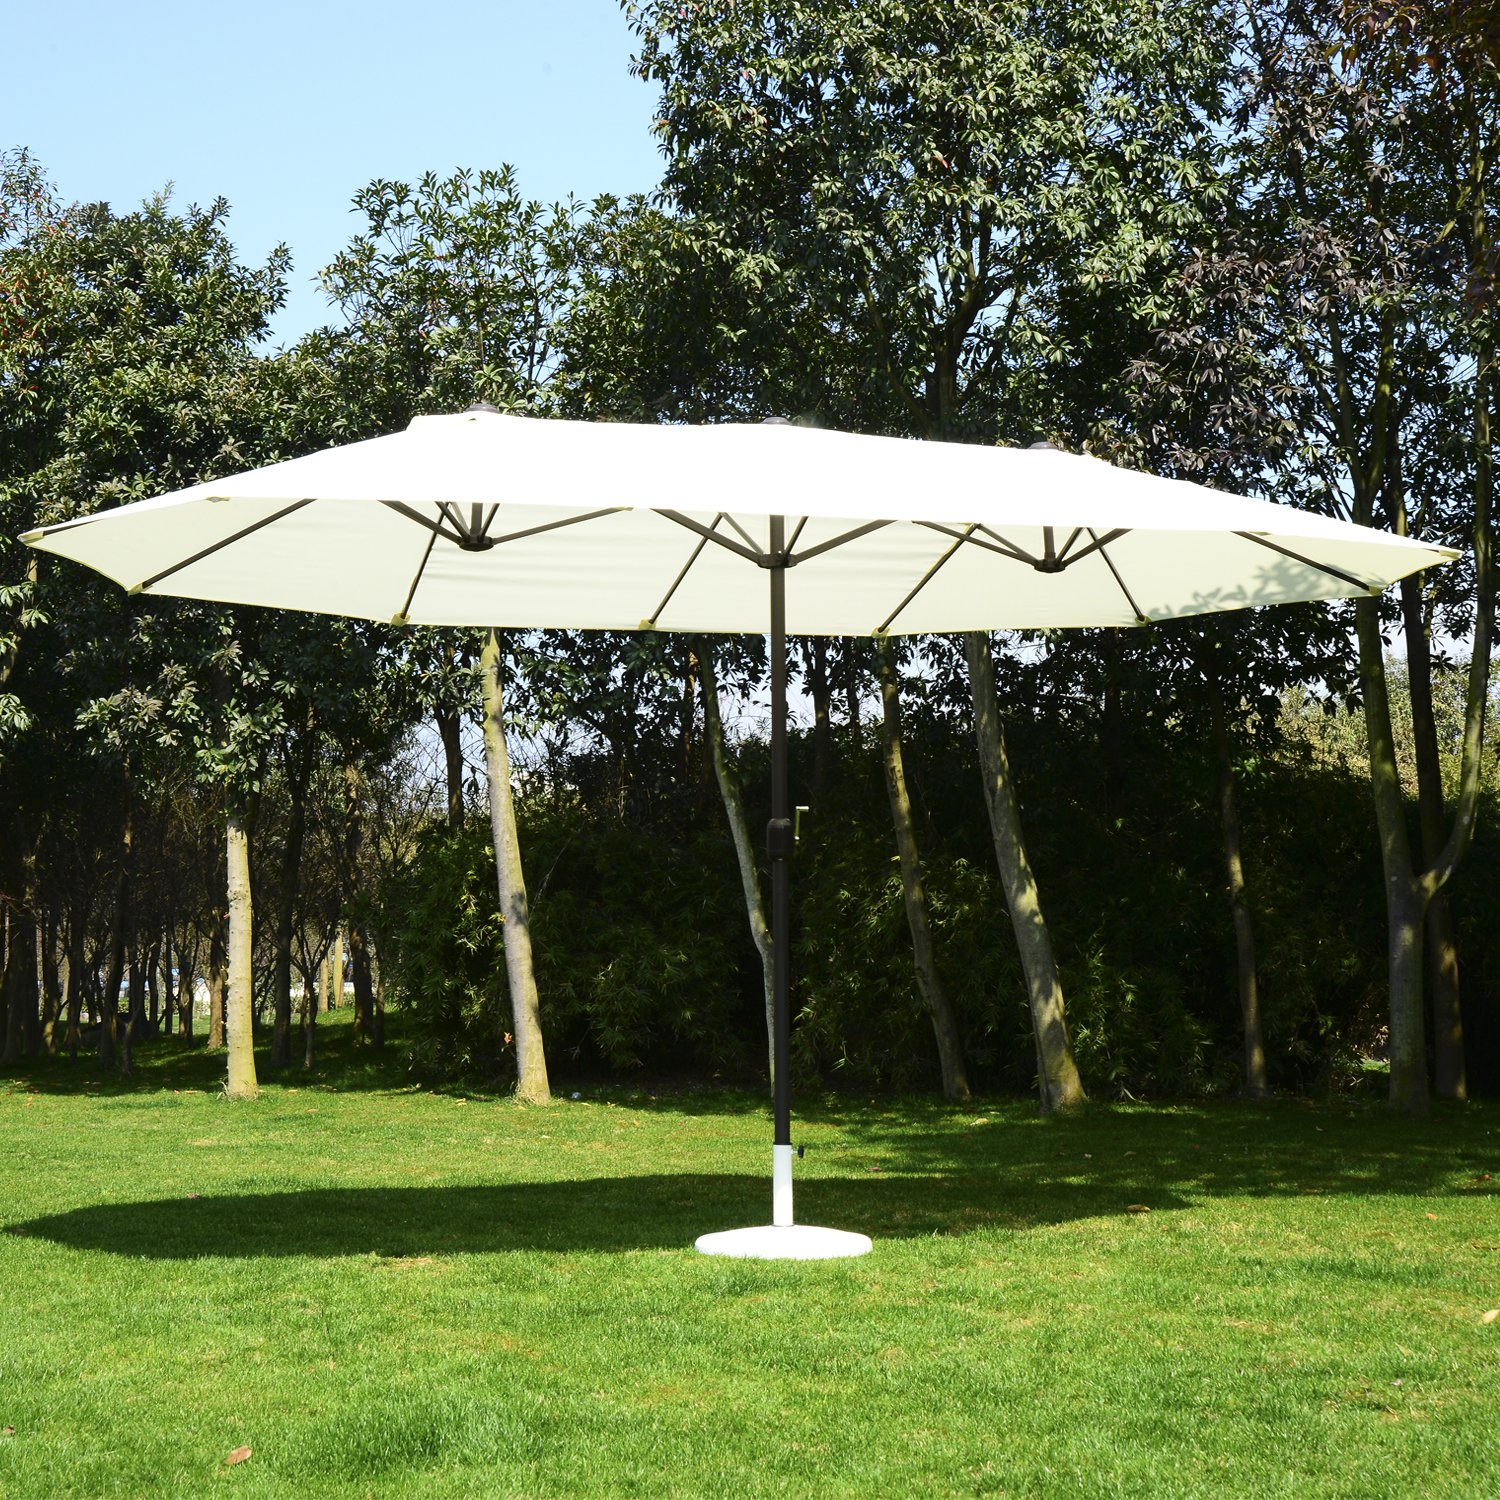 Outsunny 15u0027 Outdoor Patio Market Double Sided Umbrella   Cream White And  Brown